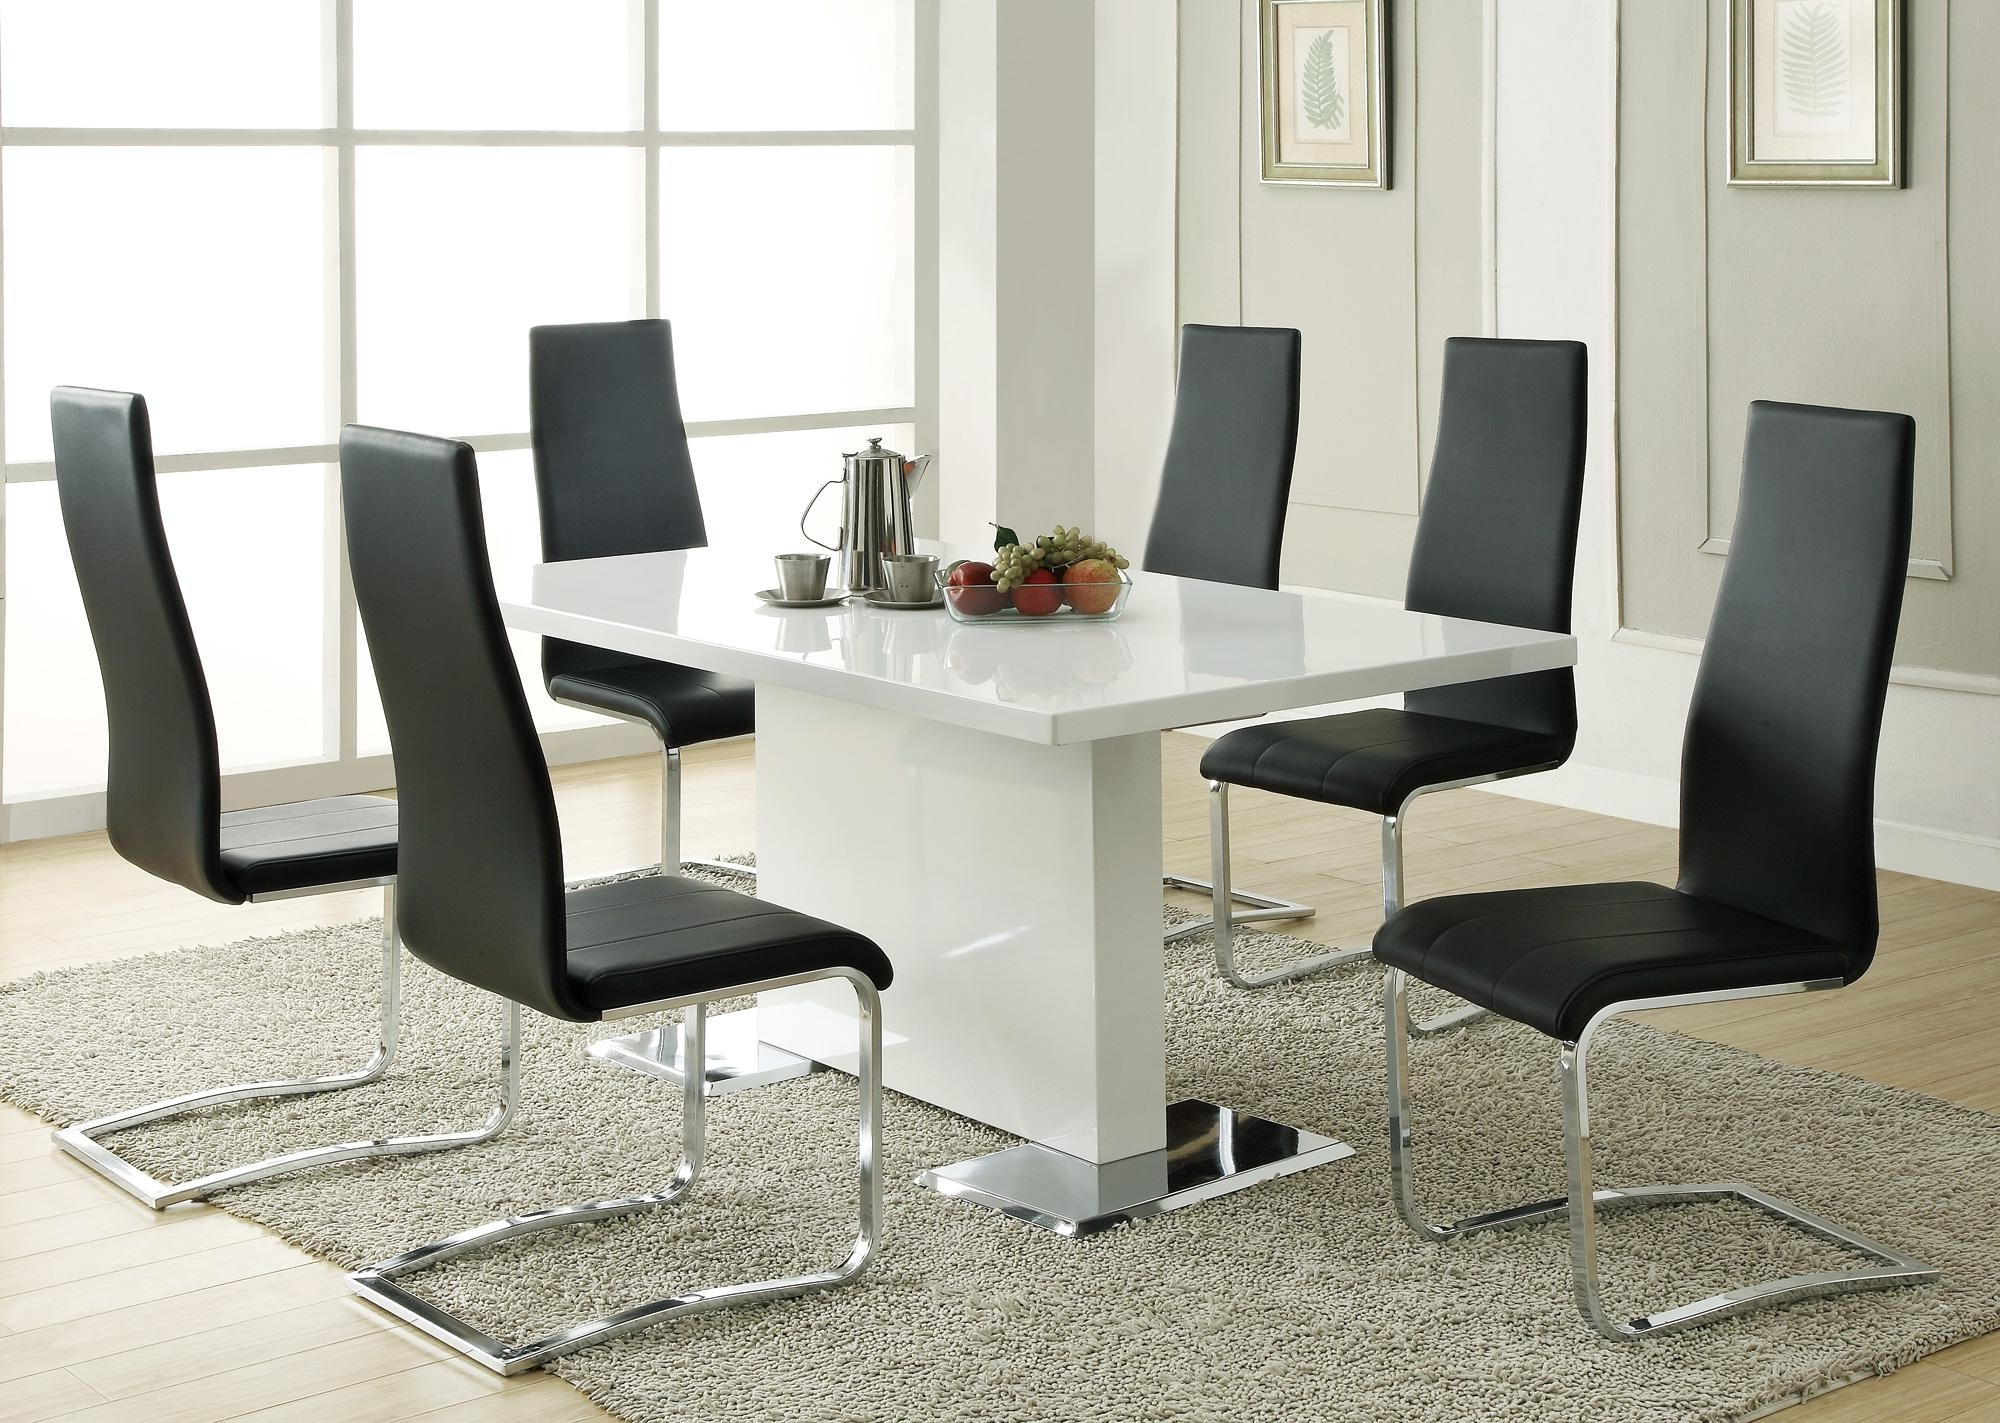 Fashionable Dining Sets (View 19 of 25)